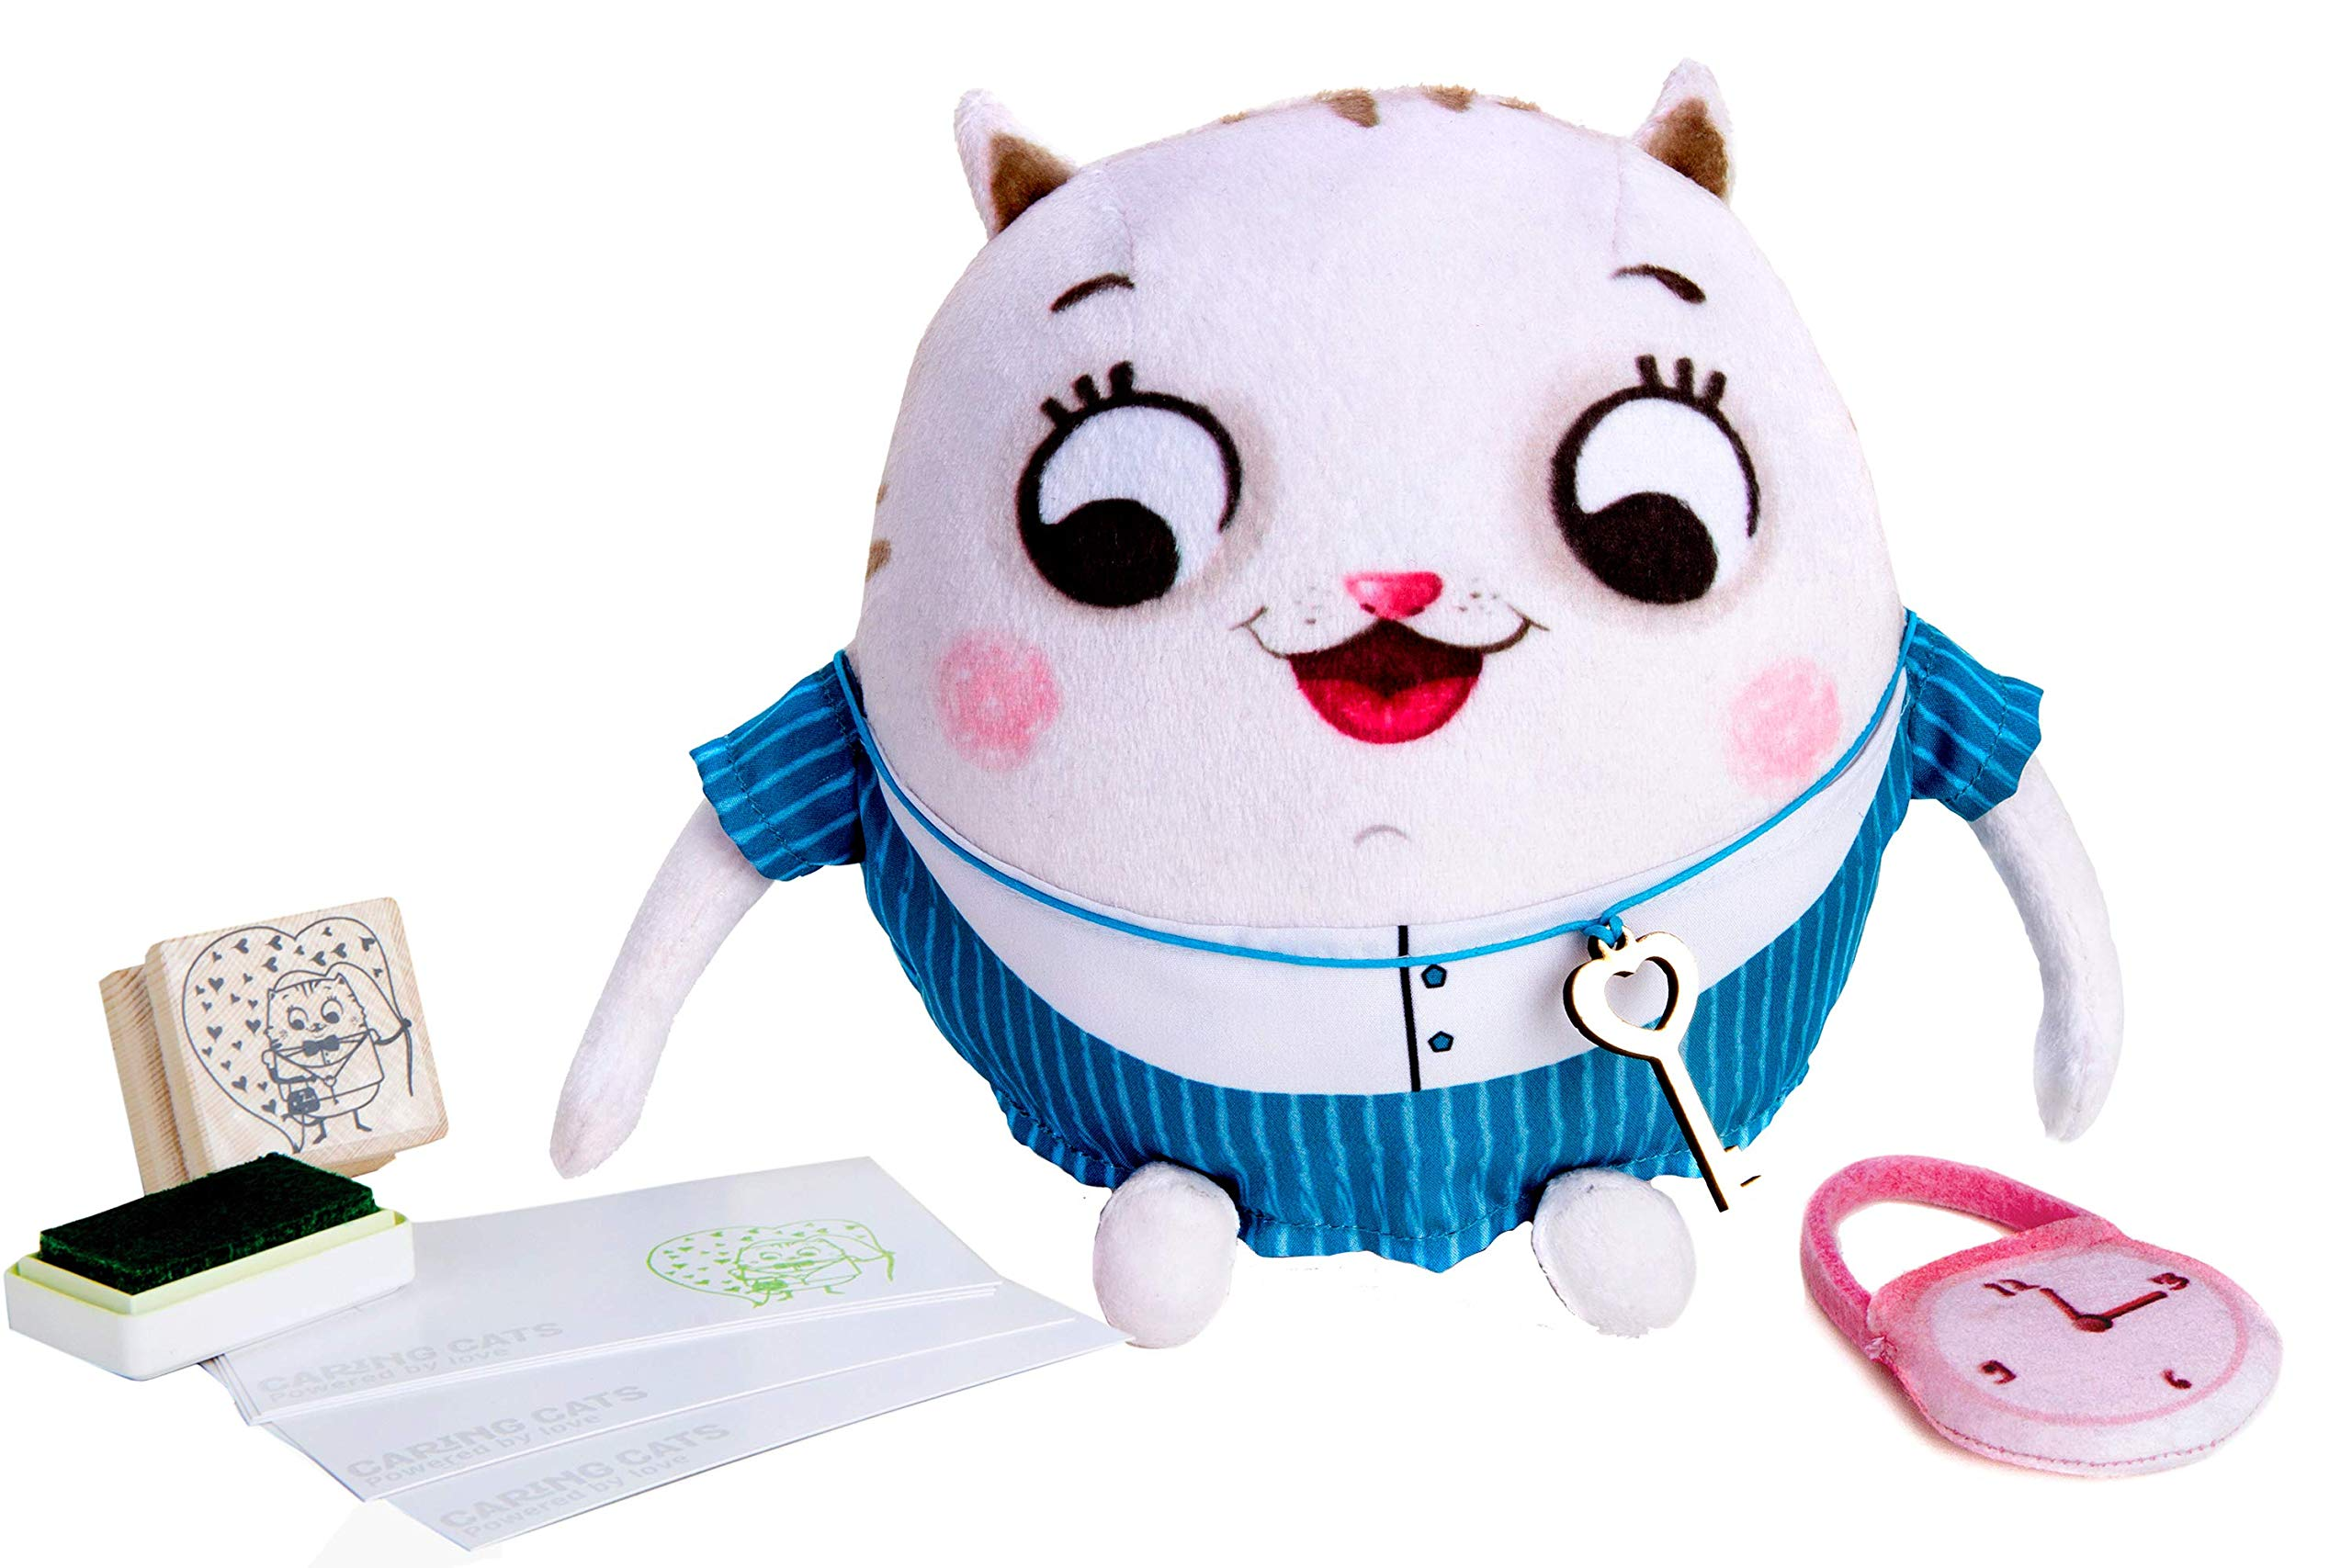 Chalk and Chuckles Helpfilli Cat Plush Toy - Stuffed Animal Toys and Gift Plushies to Teach Kindness and Emotional Skills for Girls and Boys…